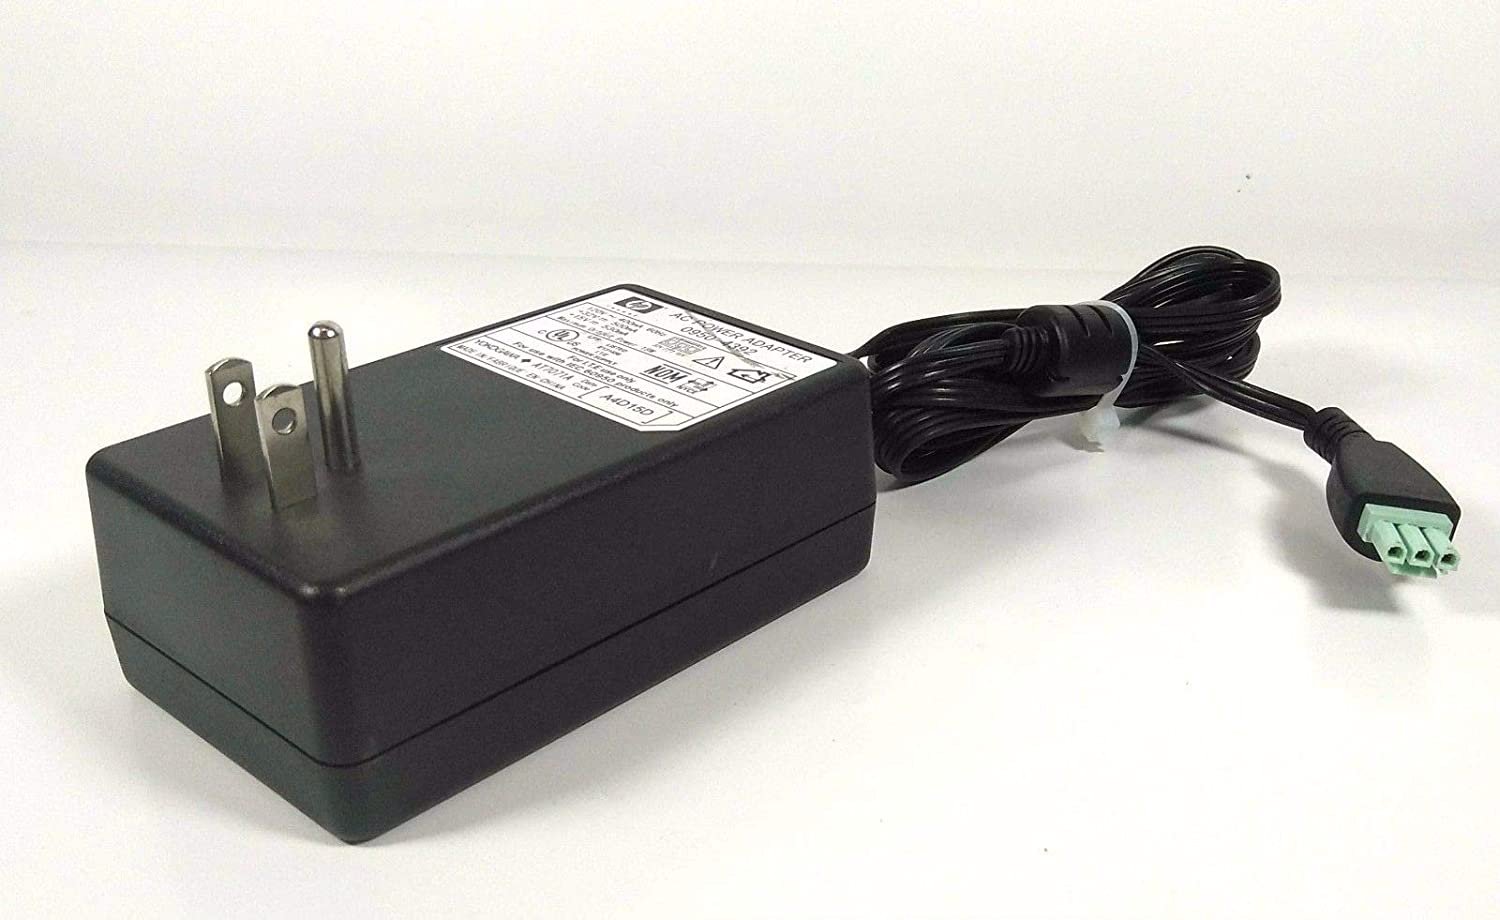 Authentic Brand AC Power Adapter HP 0950-4392 (NOT by Upright Brand or RocketBus Brand)